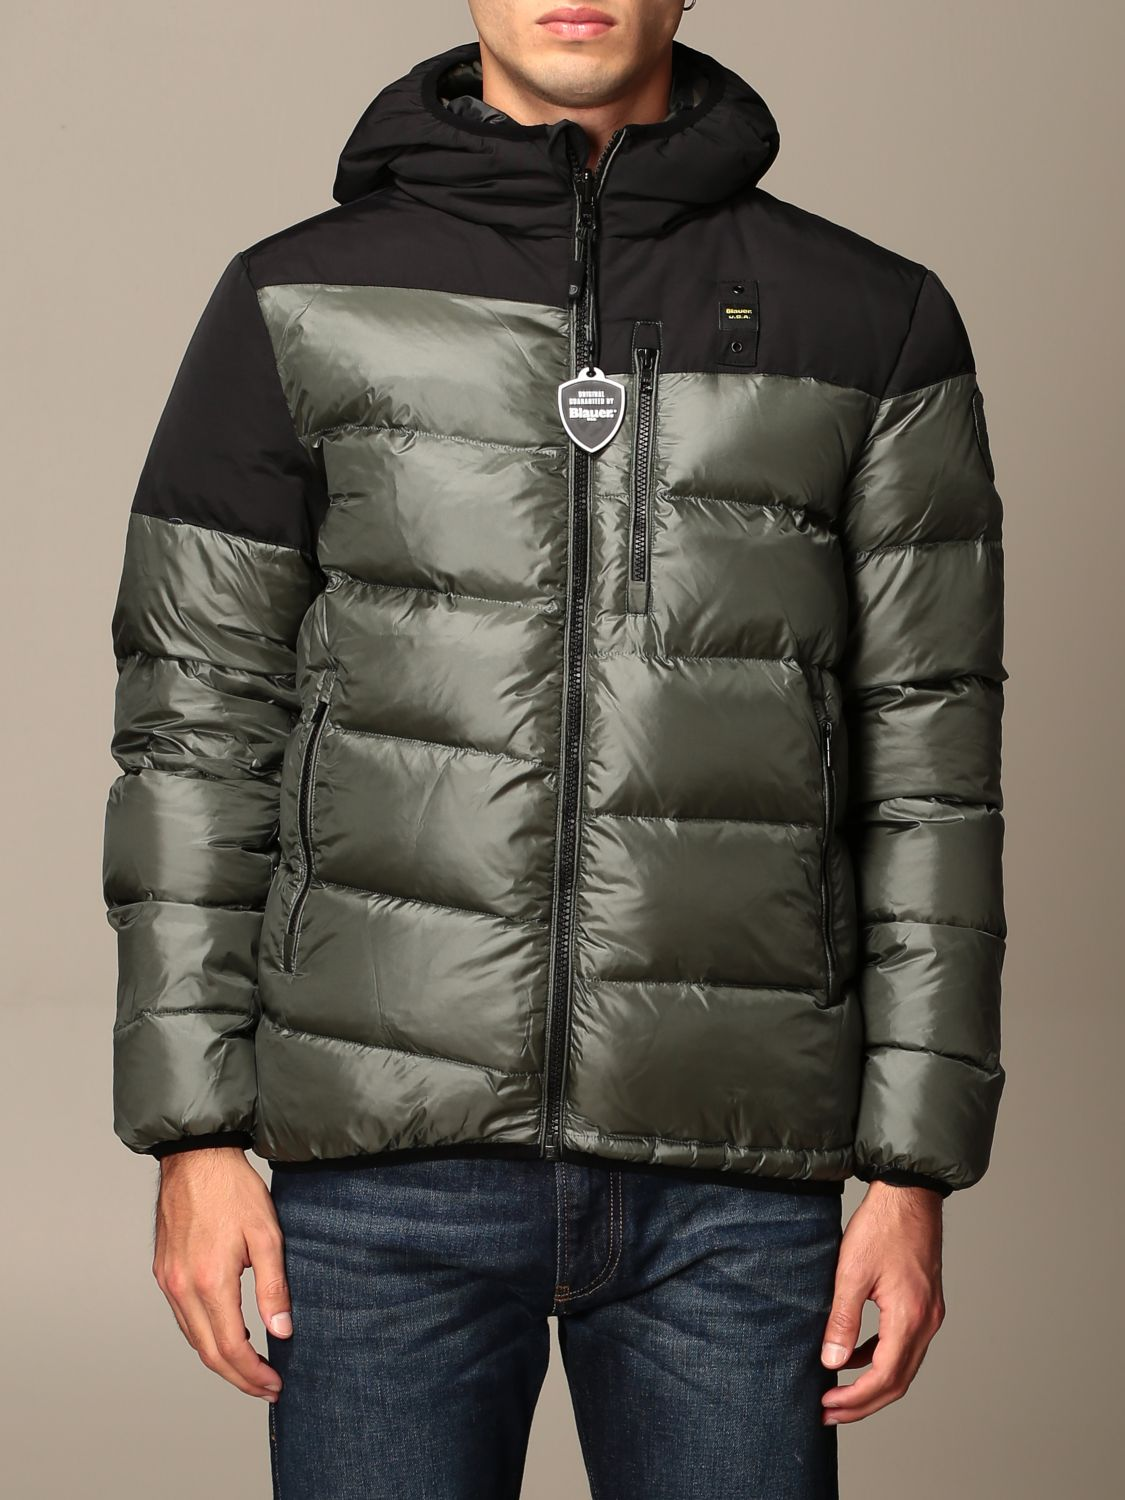 Jacket Blauer: Coat men Blauer green 1